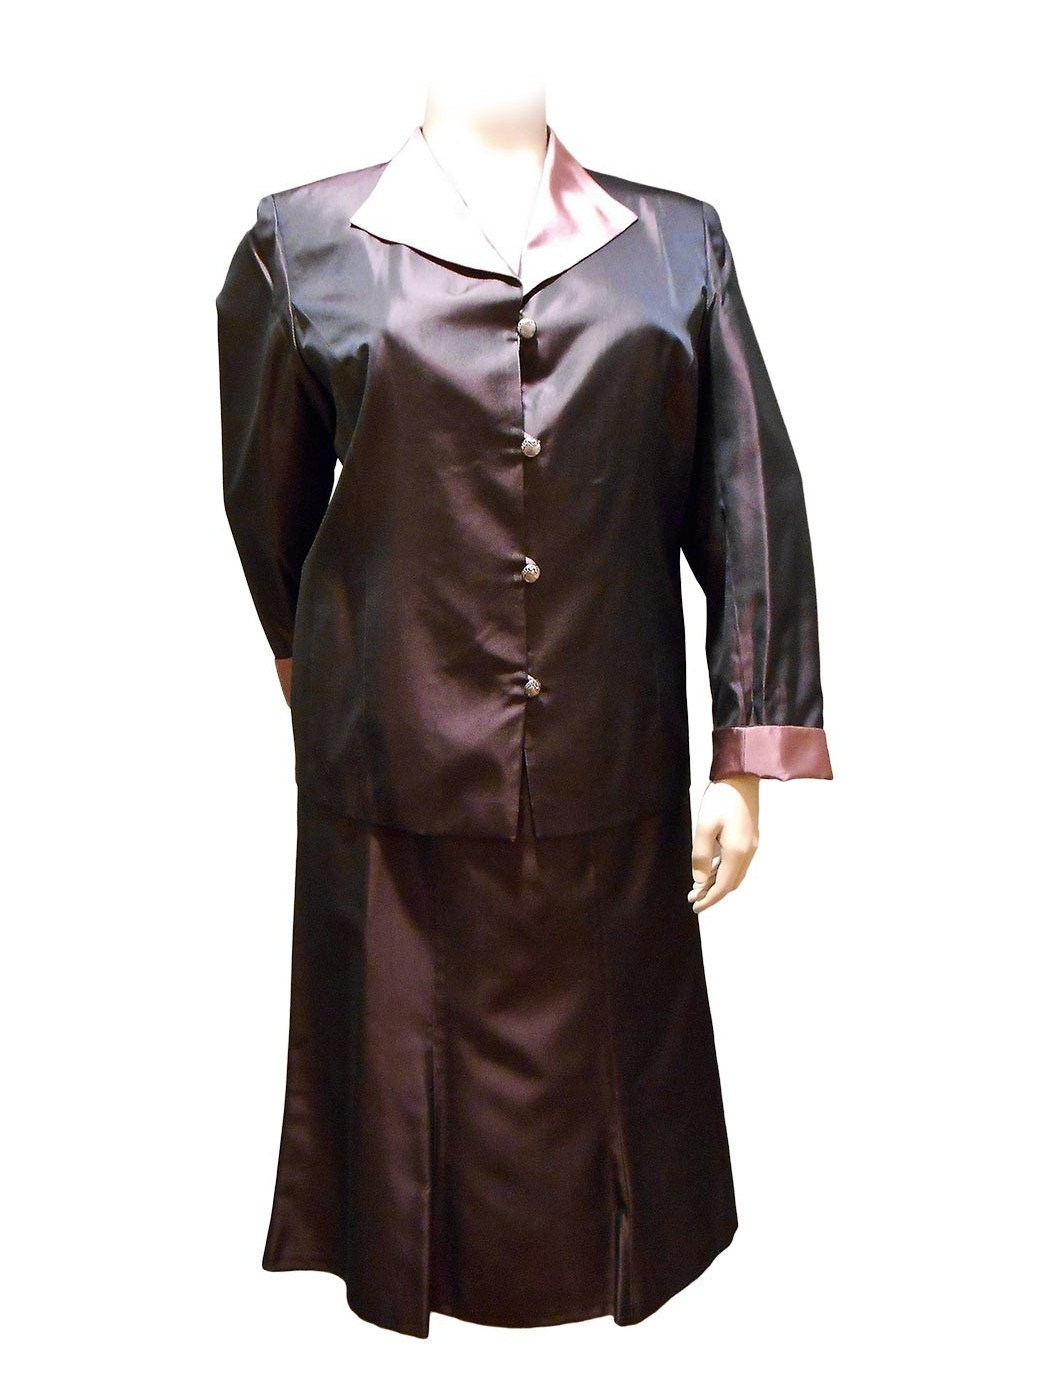 Atian organza skirt suit